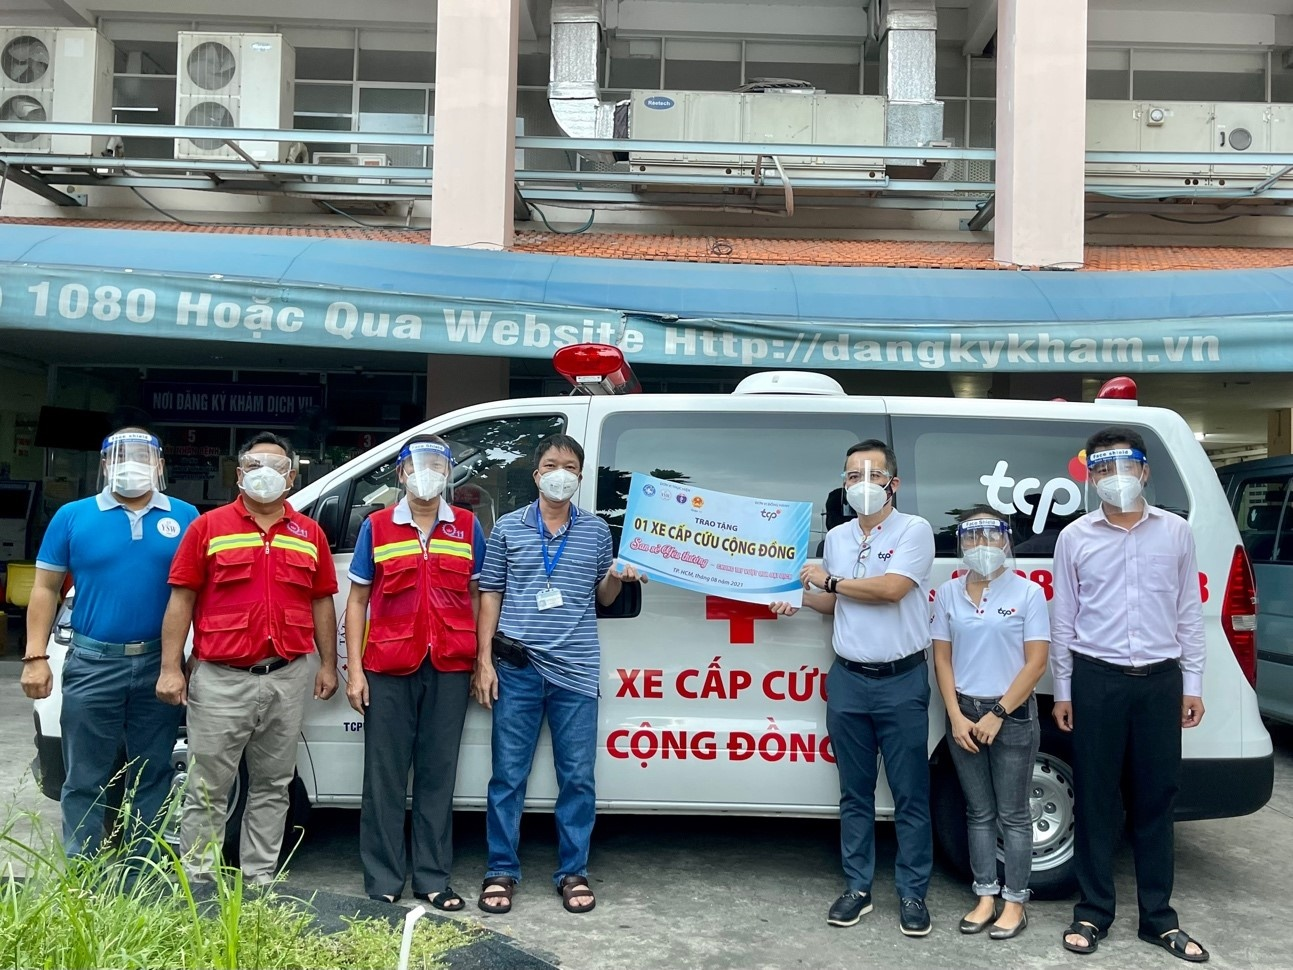 Practical medical relief solutions in Vietnam during pandemic